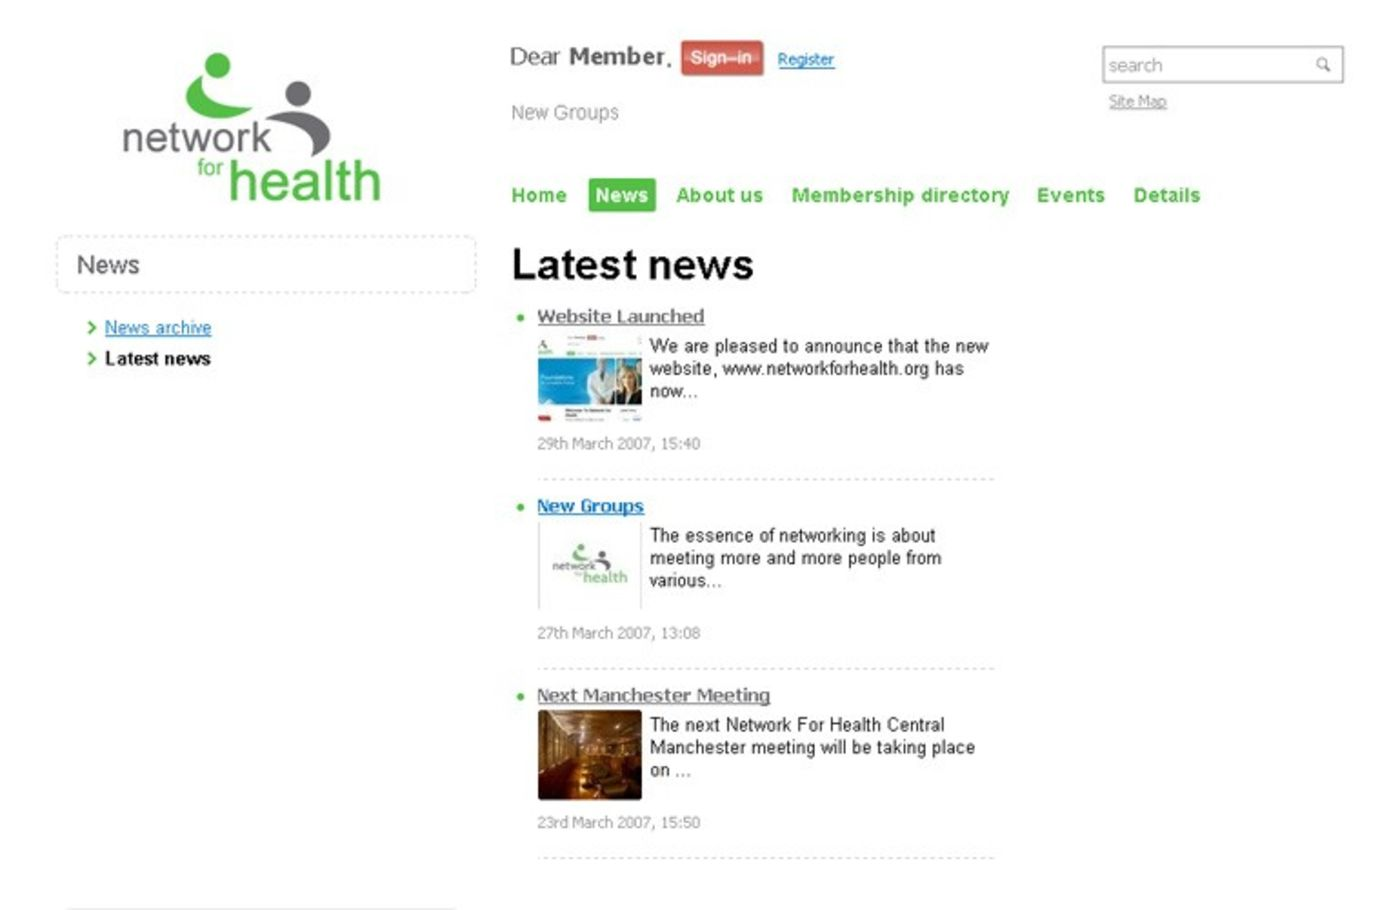 Network For Health Latest news